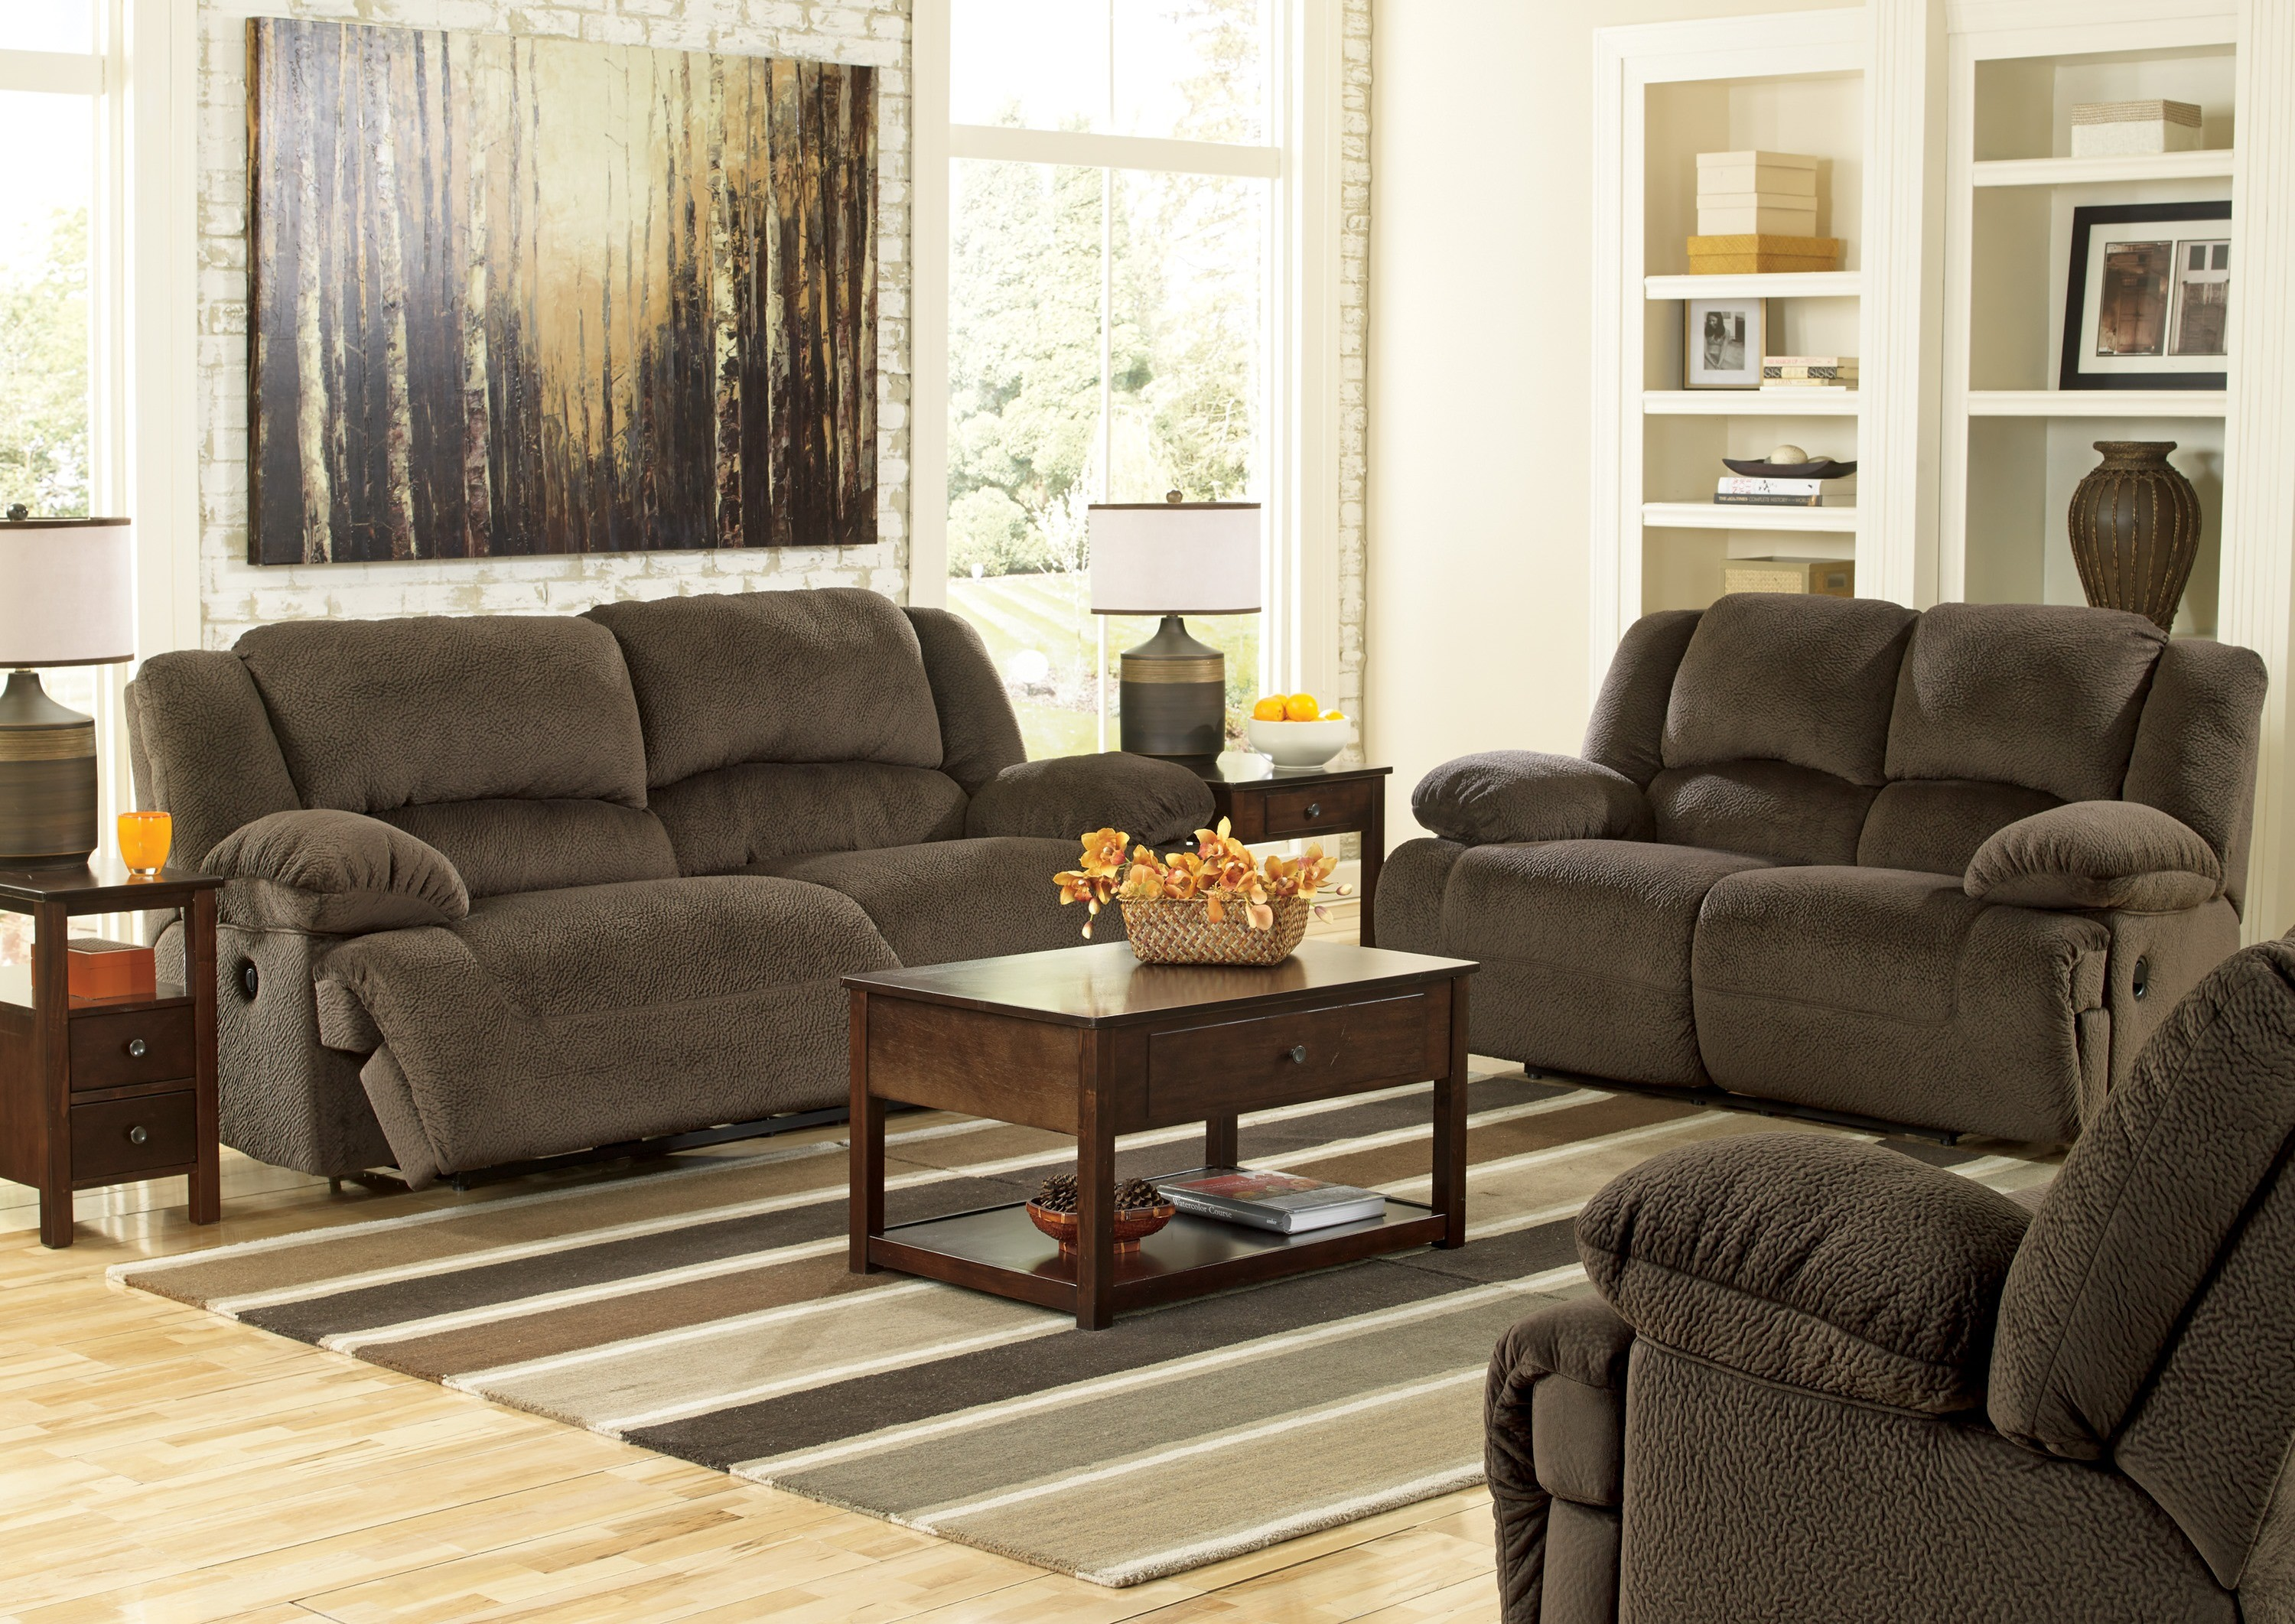 toletta chocolate living room set from ashley 5670181 86 coleman furniture. Black Bedroom Furniture Sets. Home Design Ideas